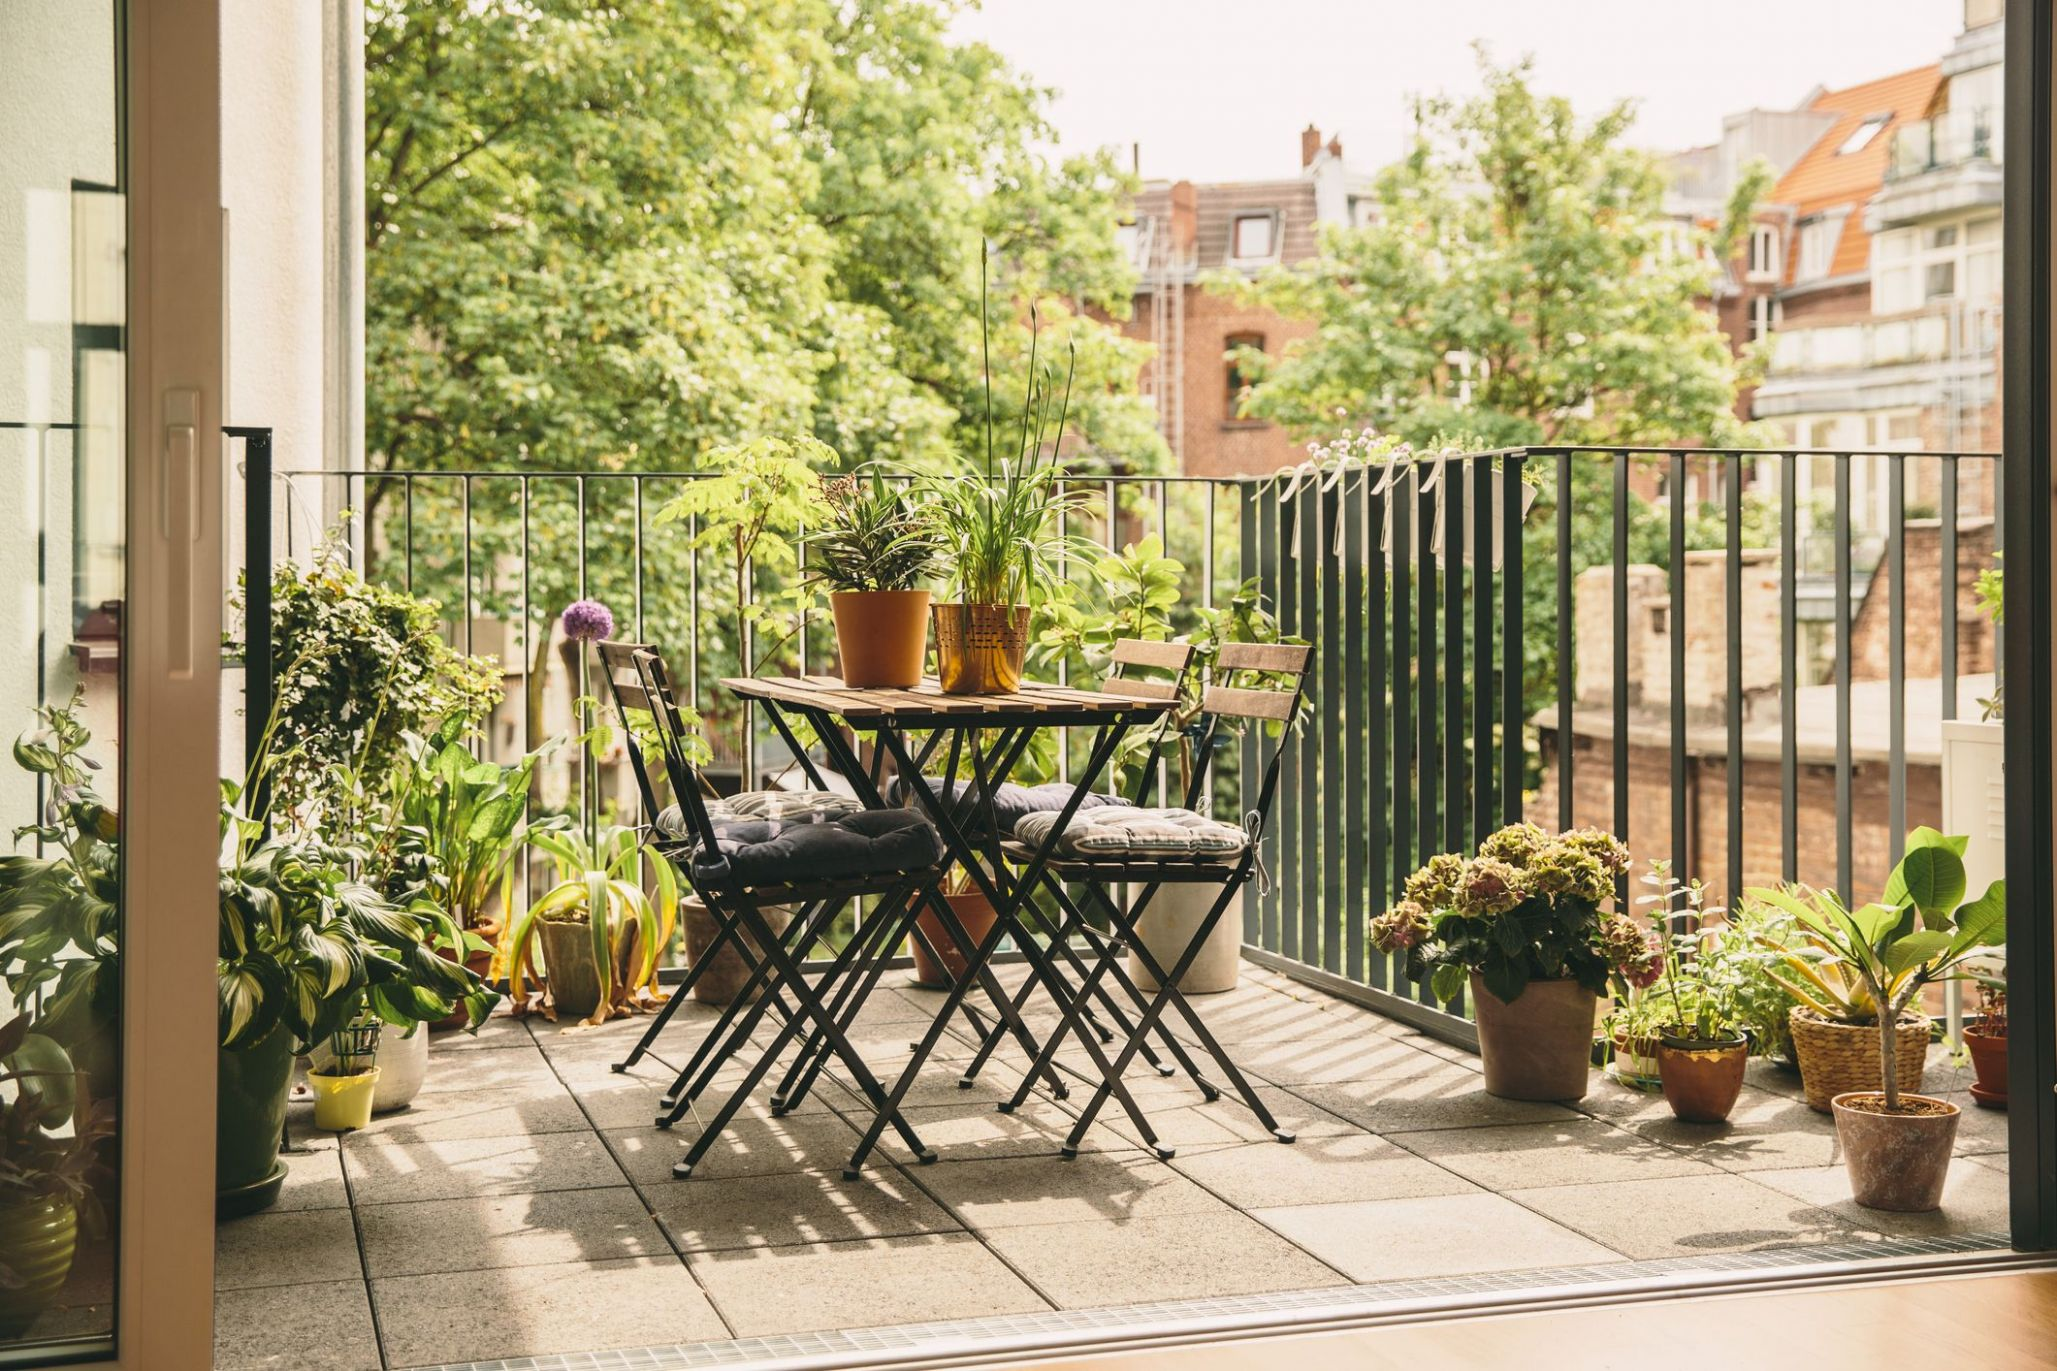 Balcony Garden Ideas - Plants, Furniture and Affordable Updates